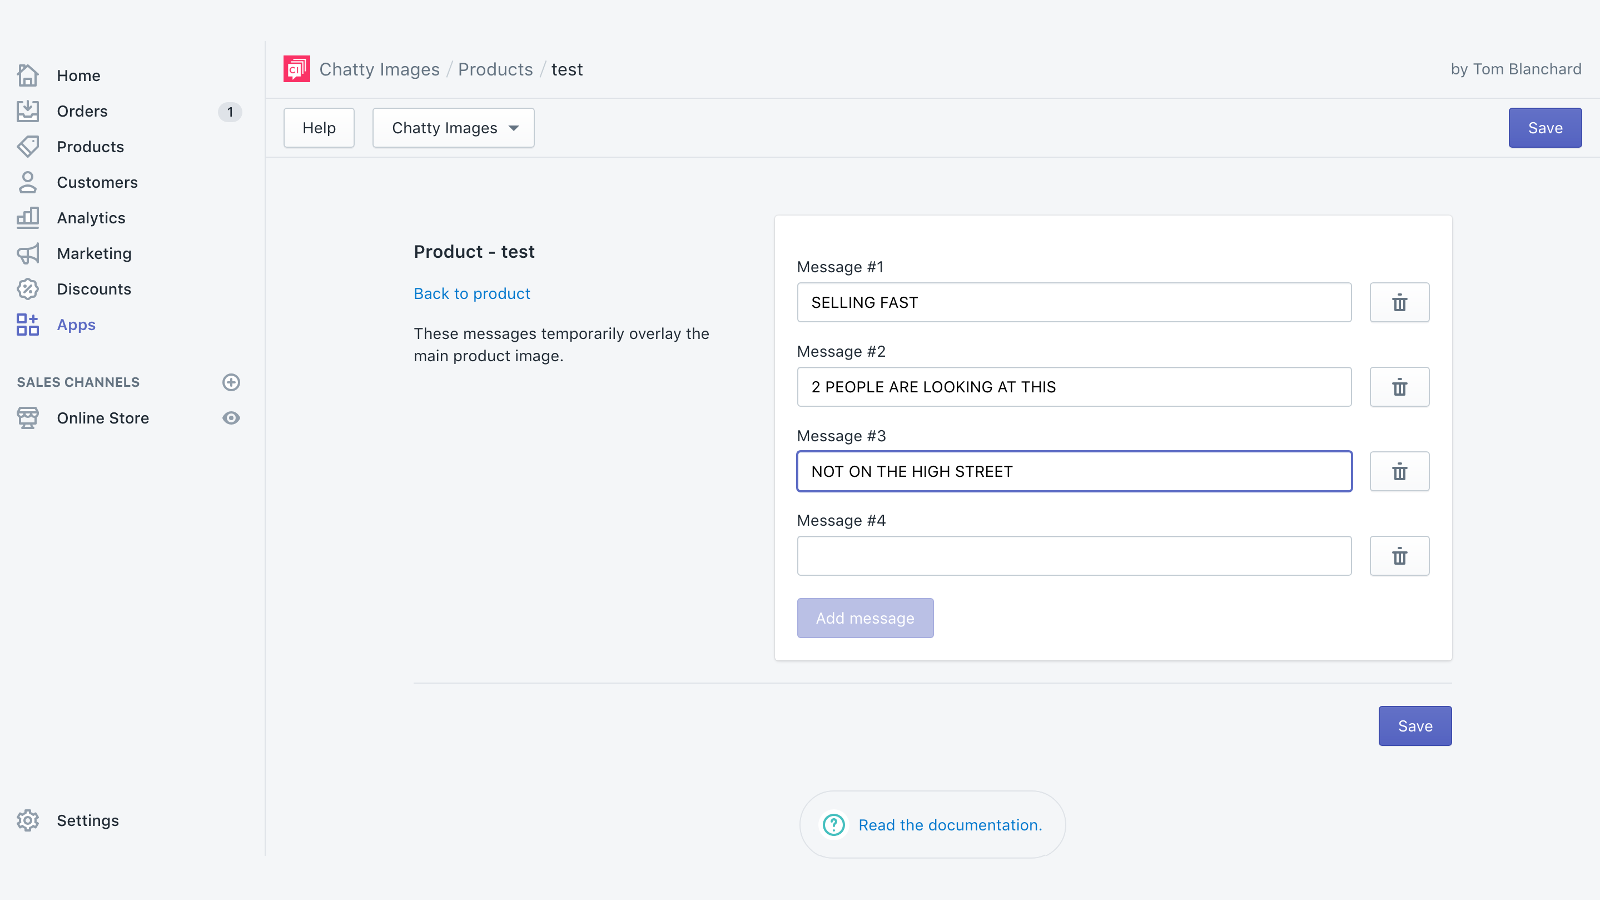 backend screenshot of chatty images messaging app with options